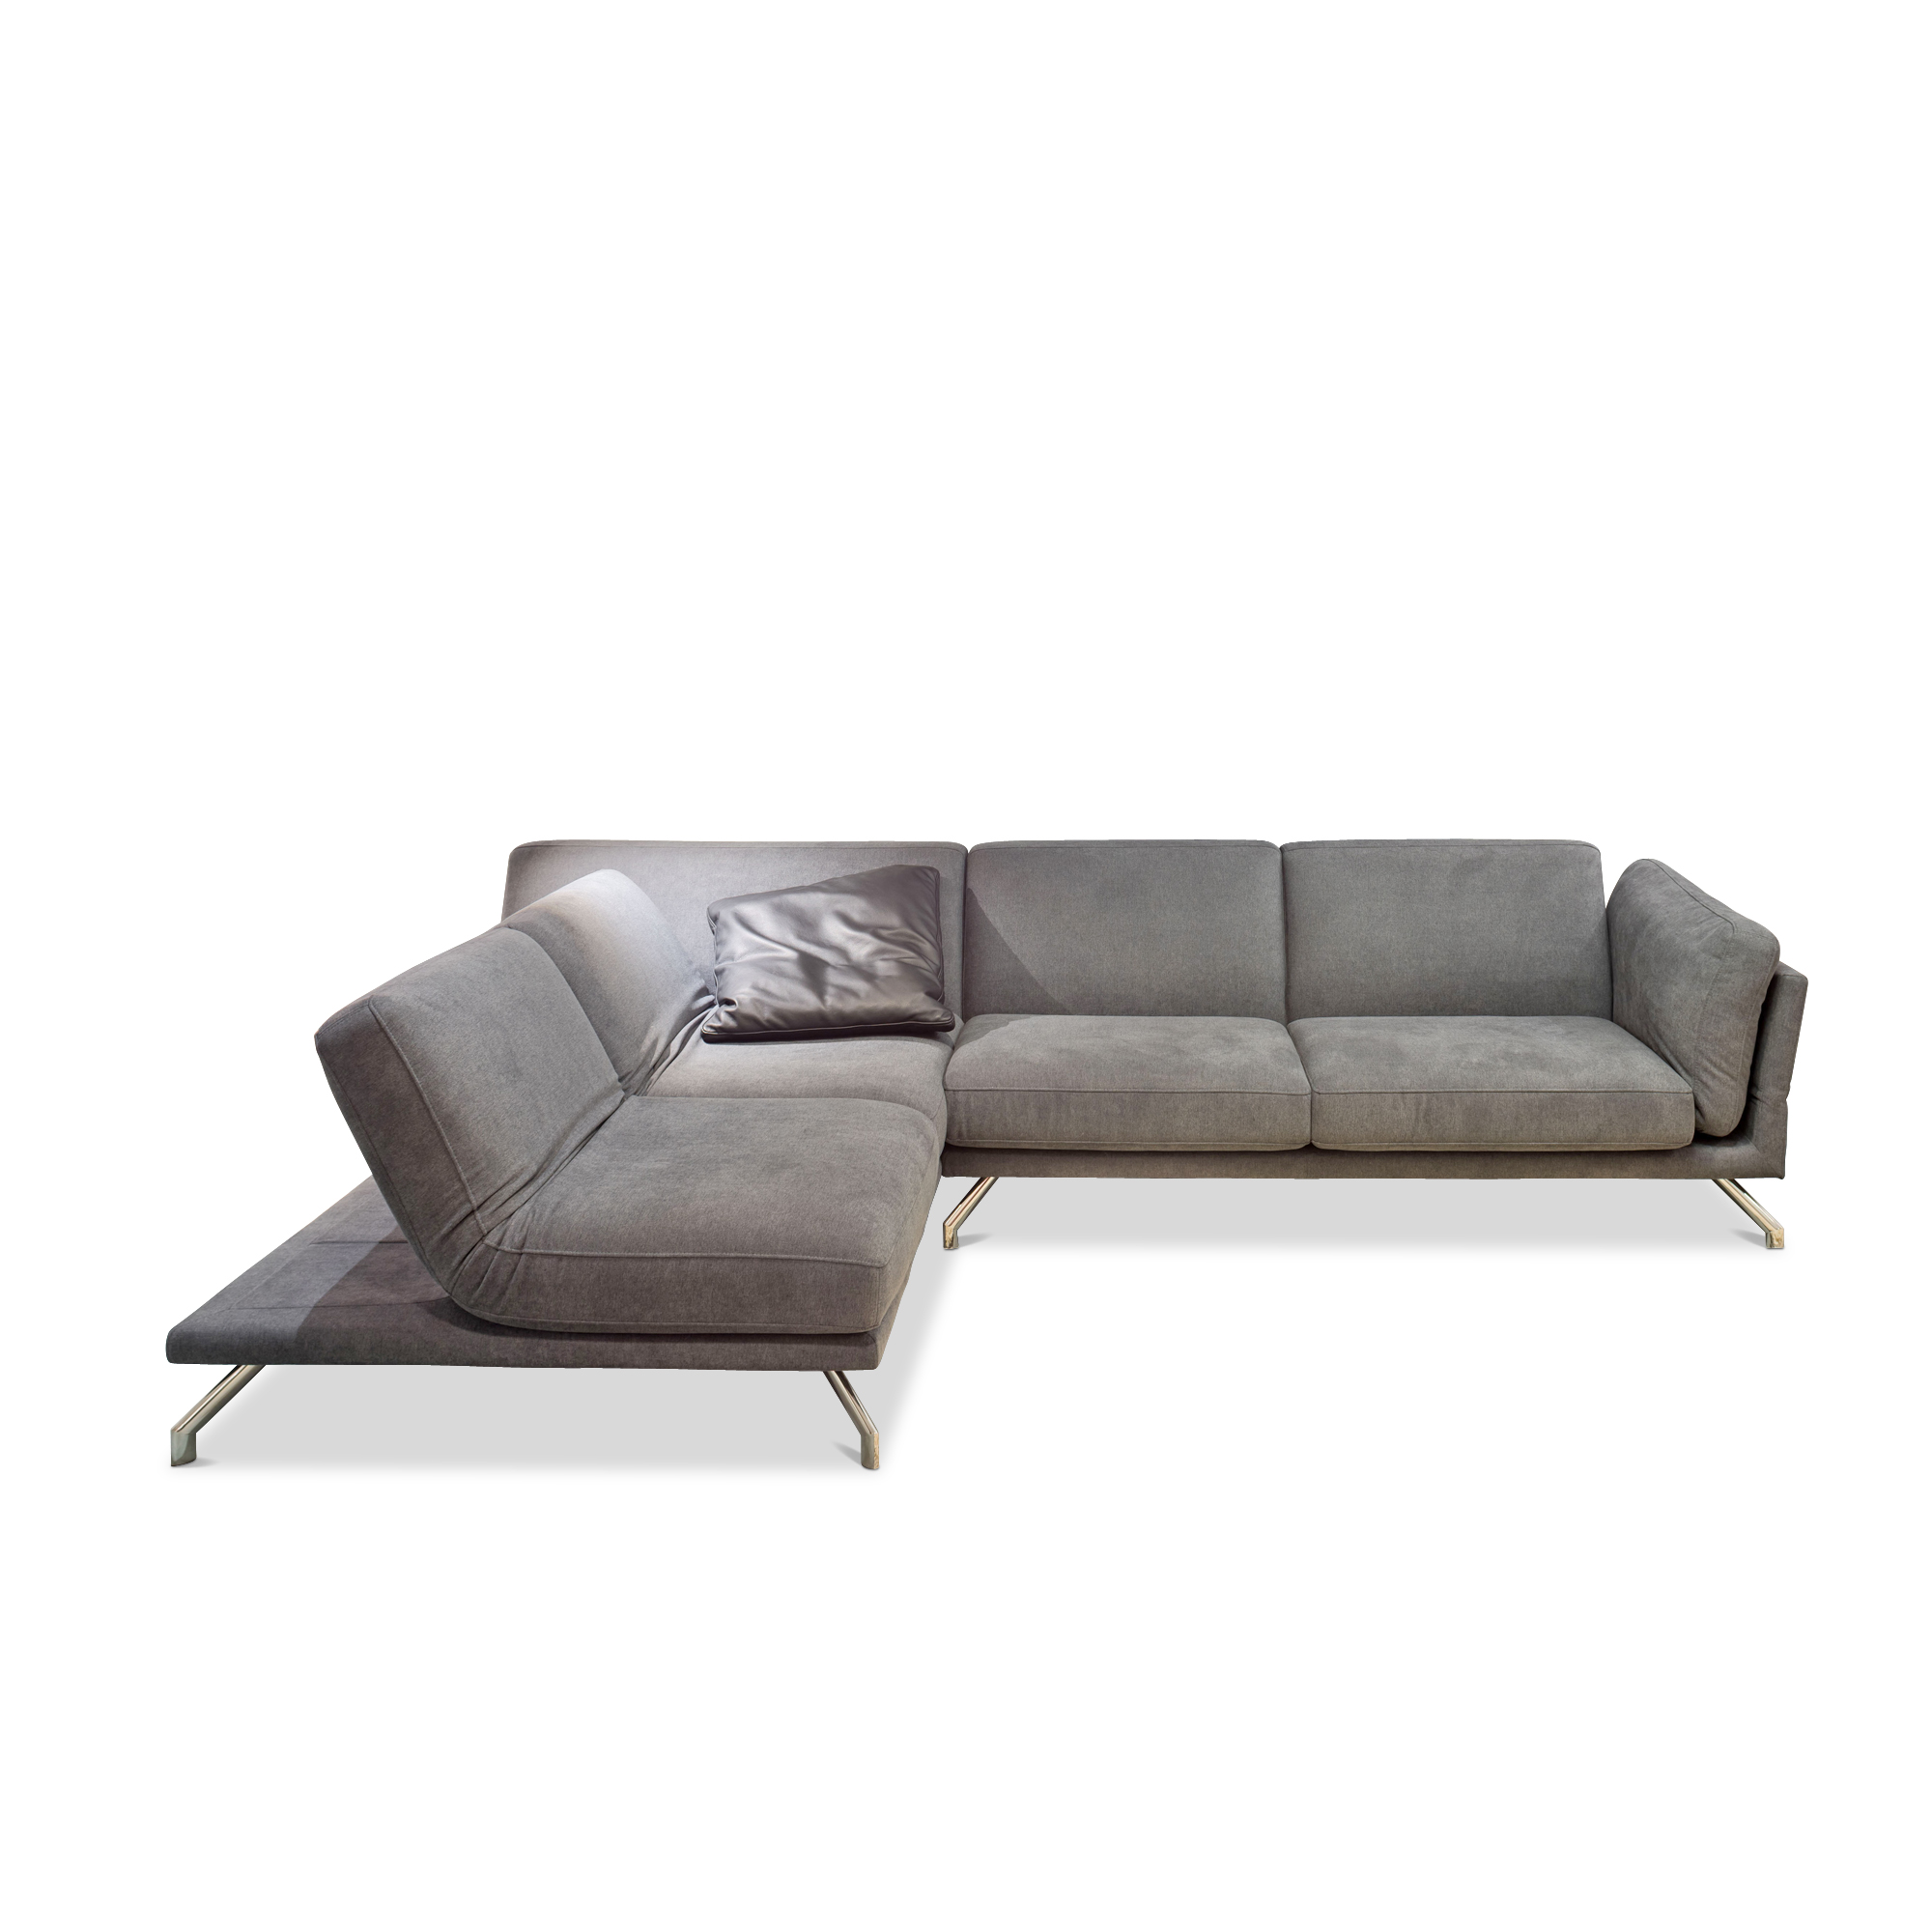 Top Ergebnis 50 Luxus sofa Sessel Kombination Galerie 2017 Hzt6 2017